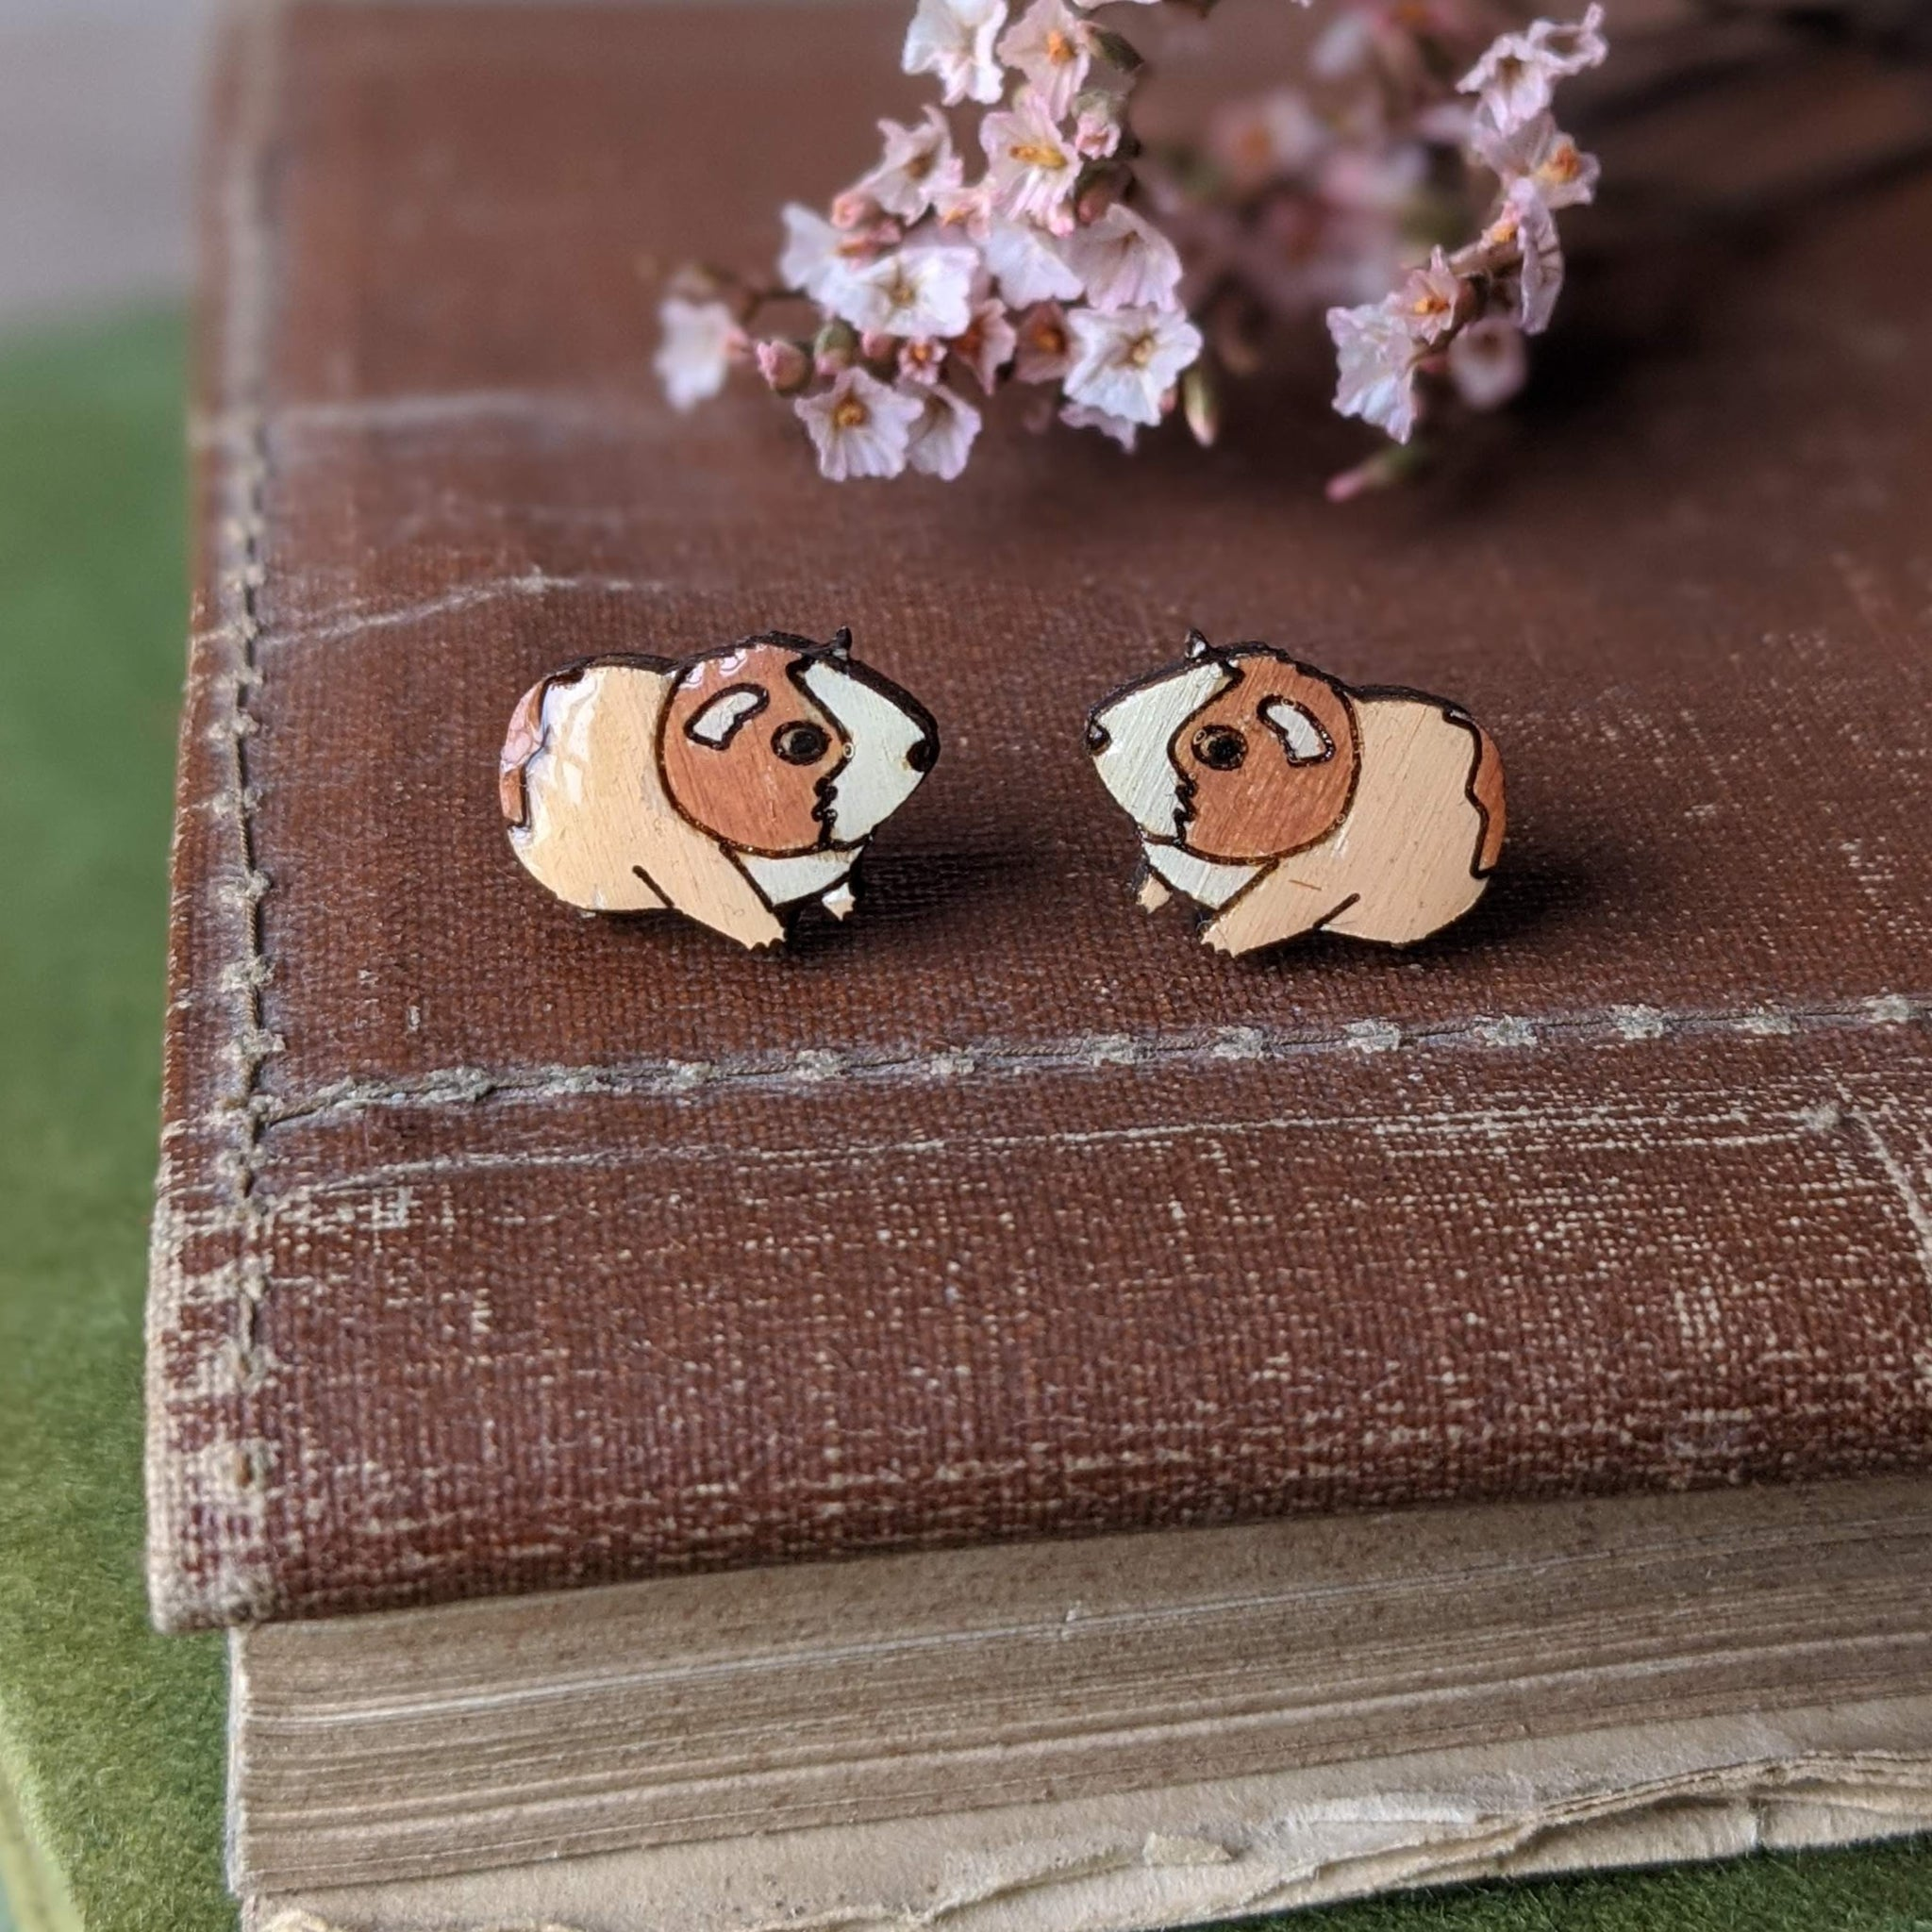 Guinea Pig Stud Earrings - Brown/White - Everything Guinea Pig